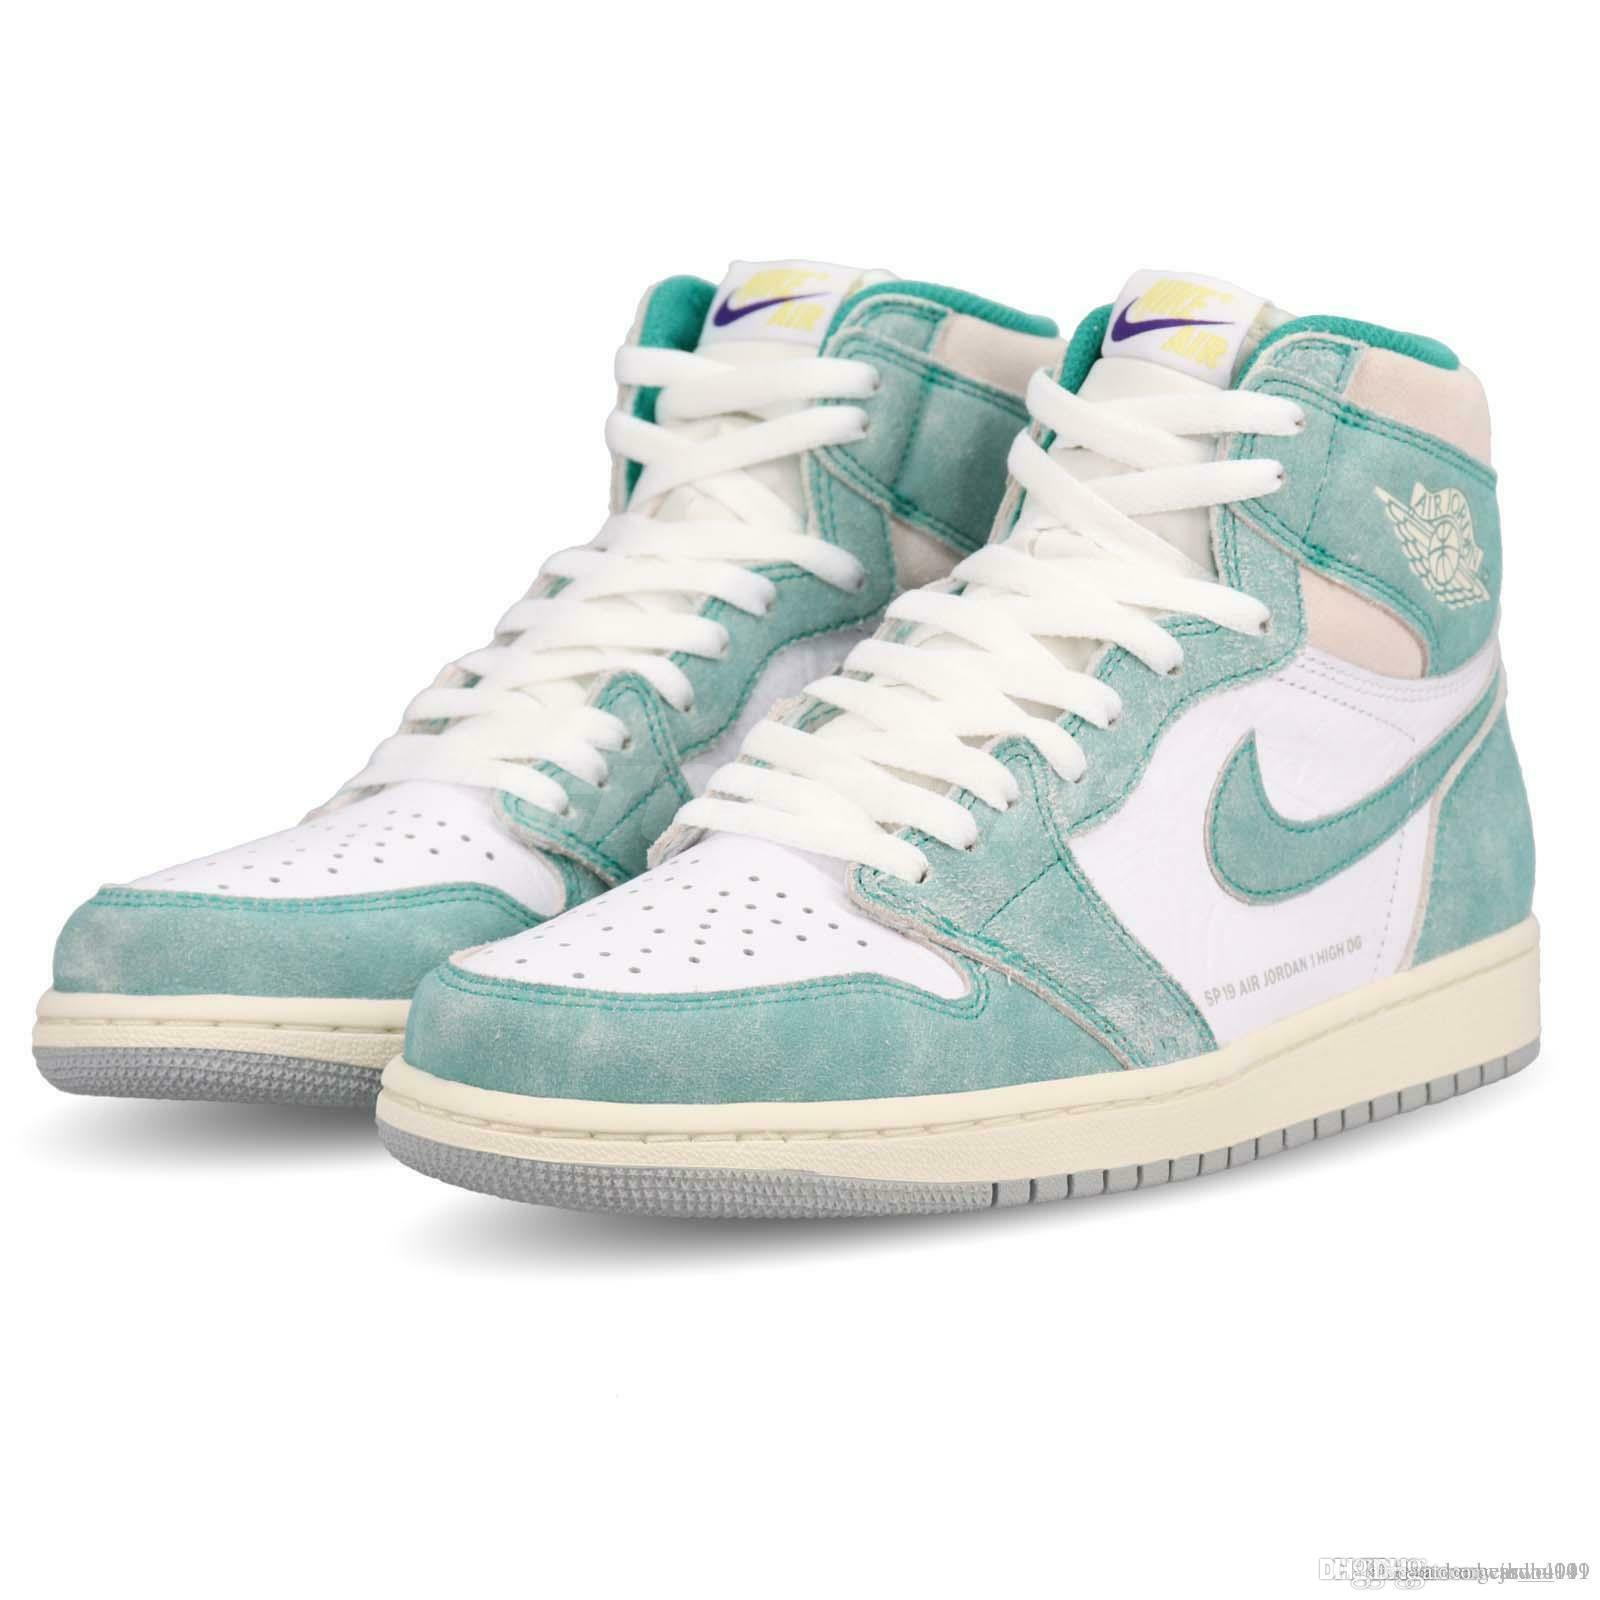 the latest 6bb12 ce699 2019 Aair 1 JORDAN 1s High Turbo Green Basketball Shoes Men Women  Sail-White Not for Resale Varsity High SoleFly Spiderman Shoes AIR